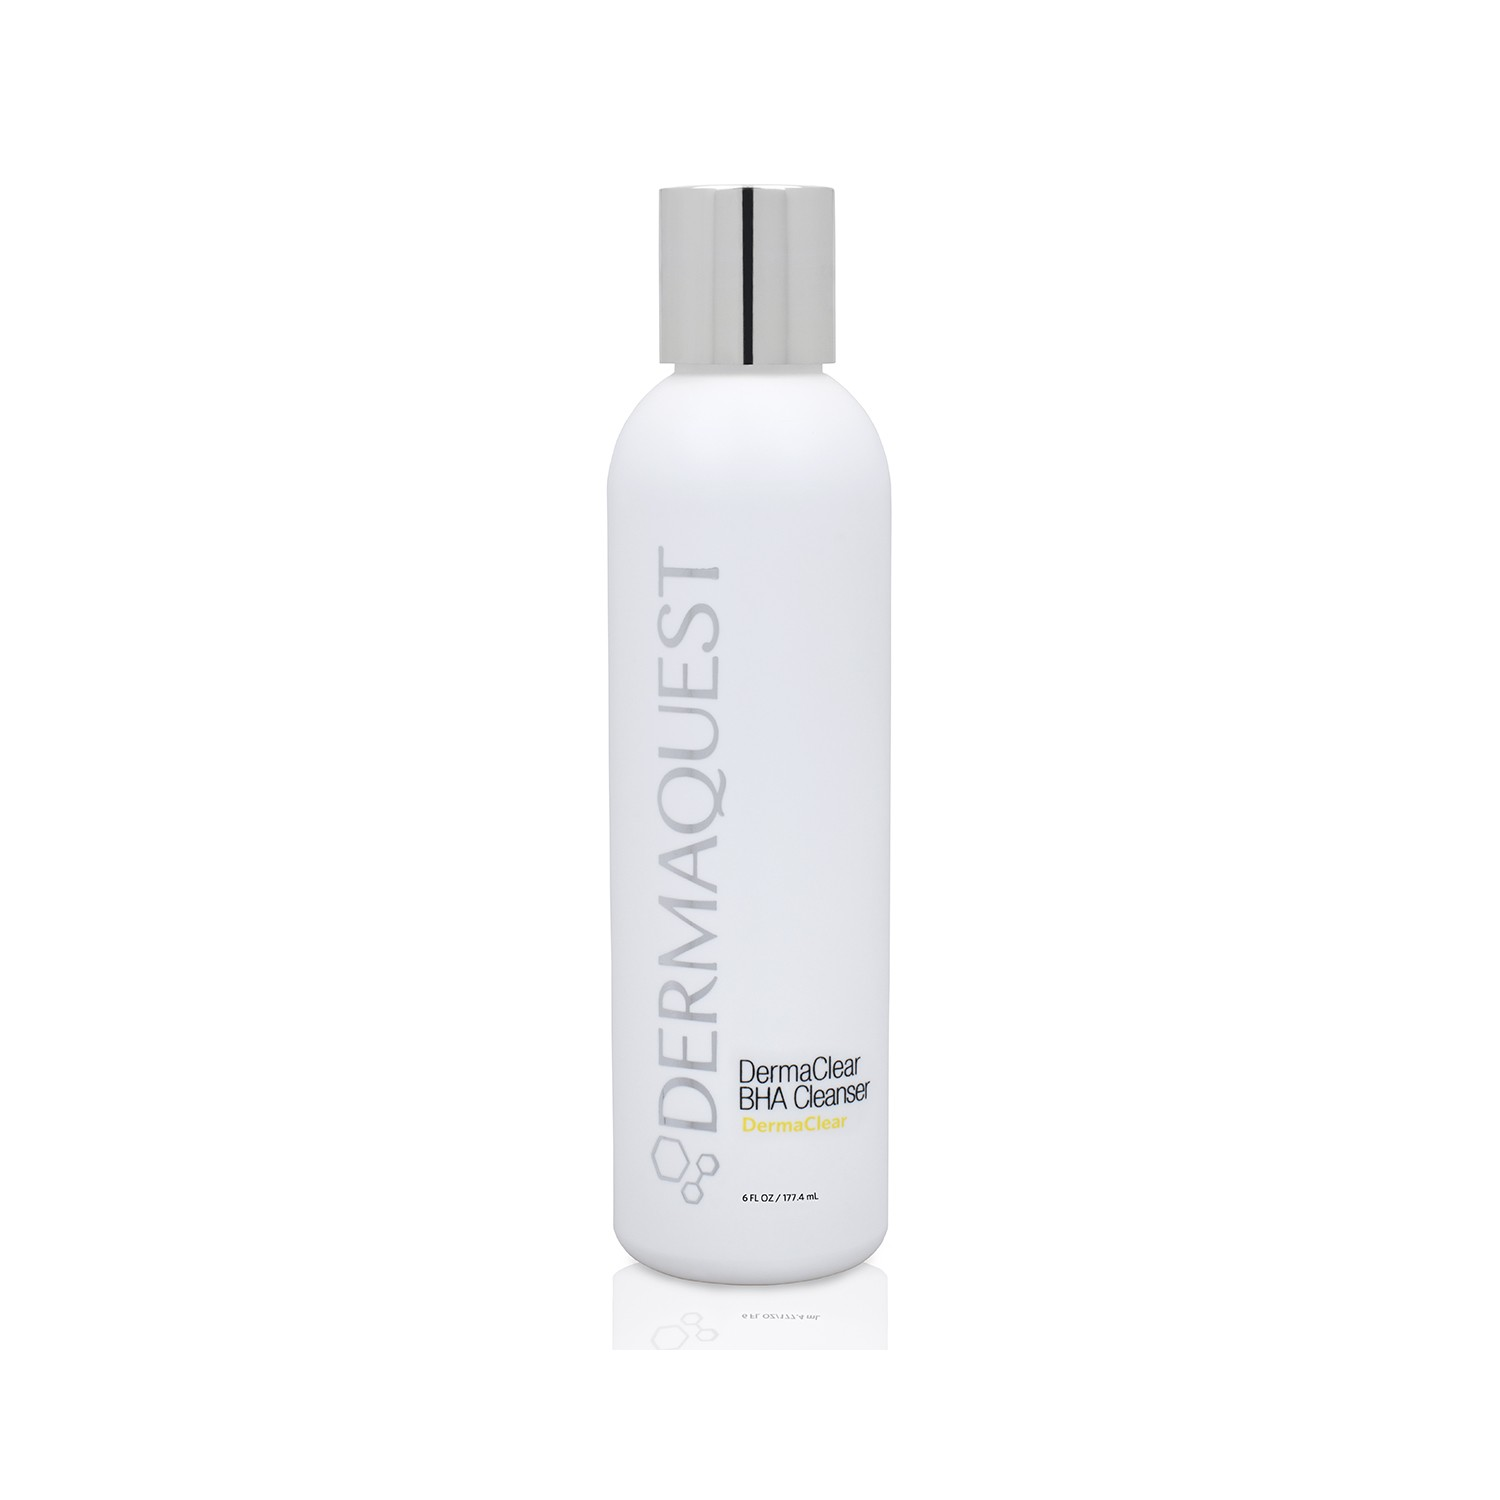 DermaQuest DermaClear BHA Cleanser (6 fl oz / 177.4 ml)